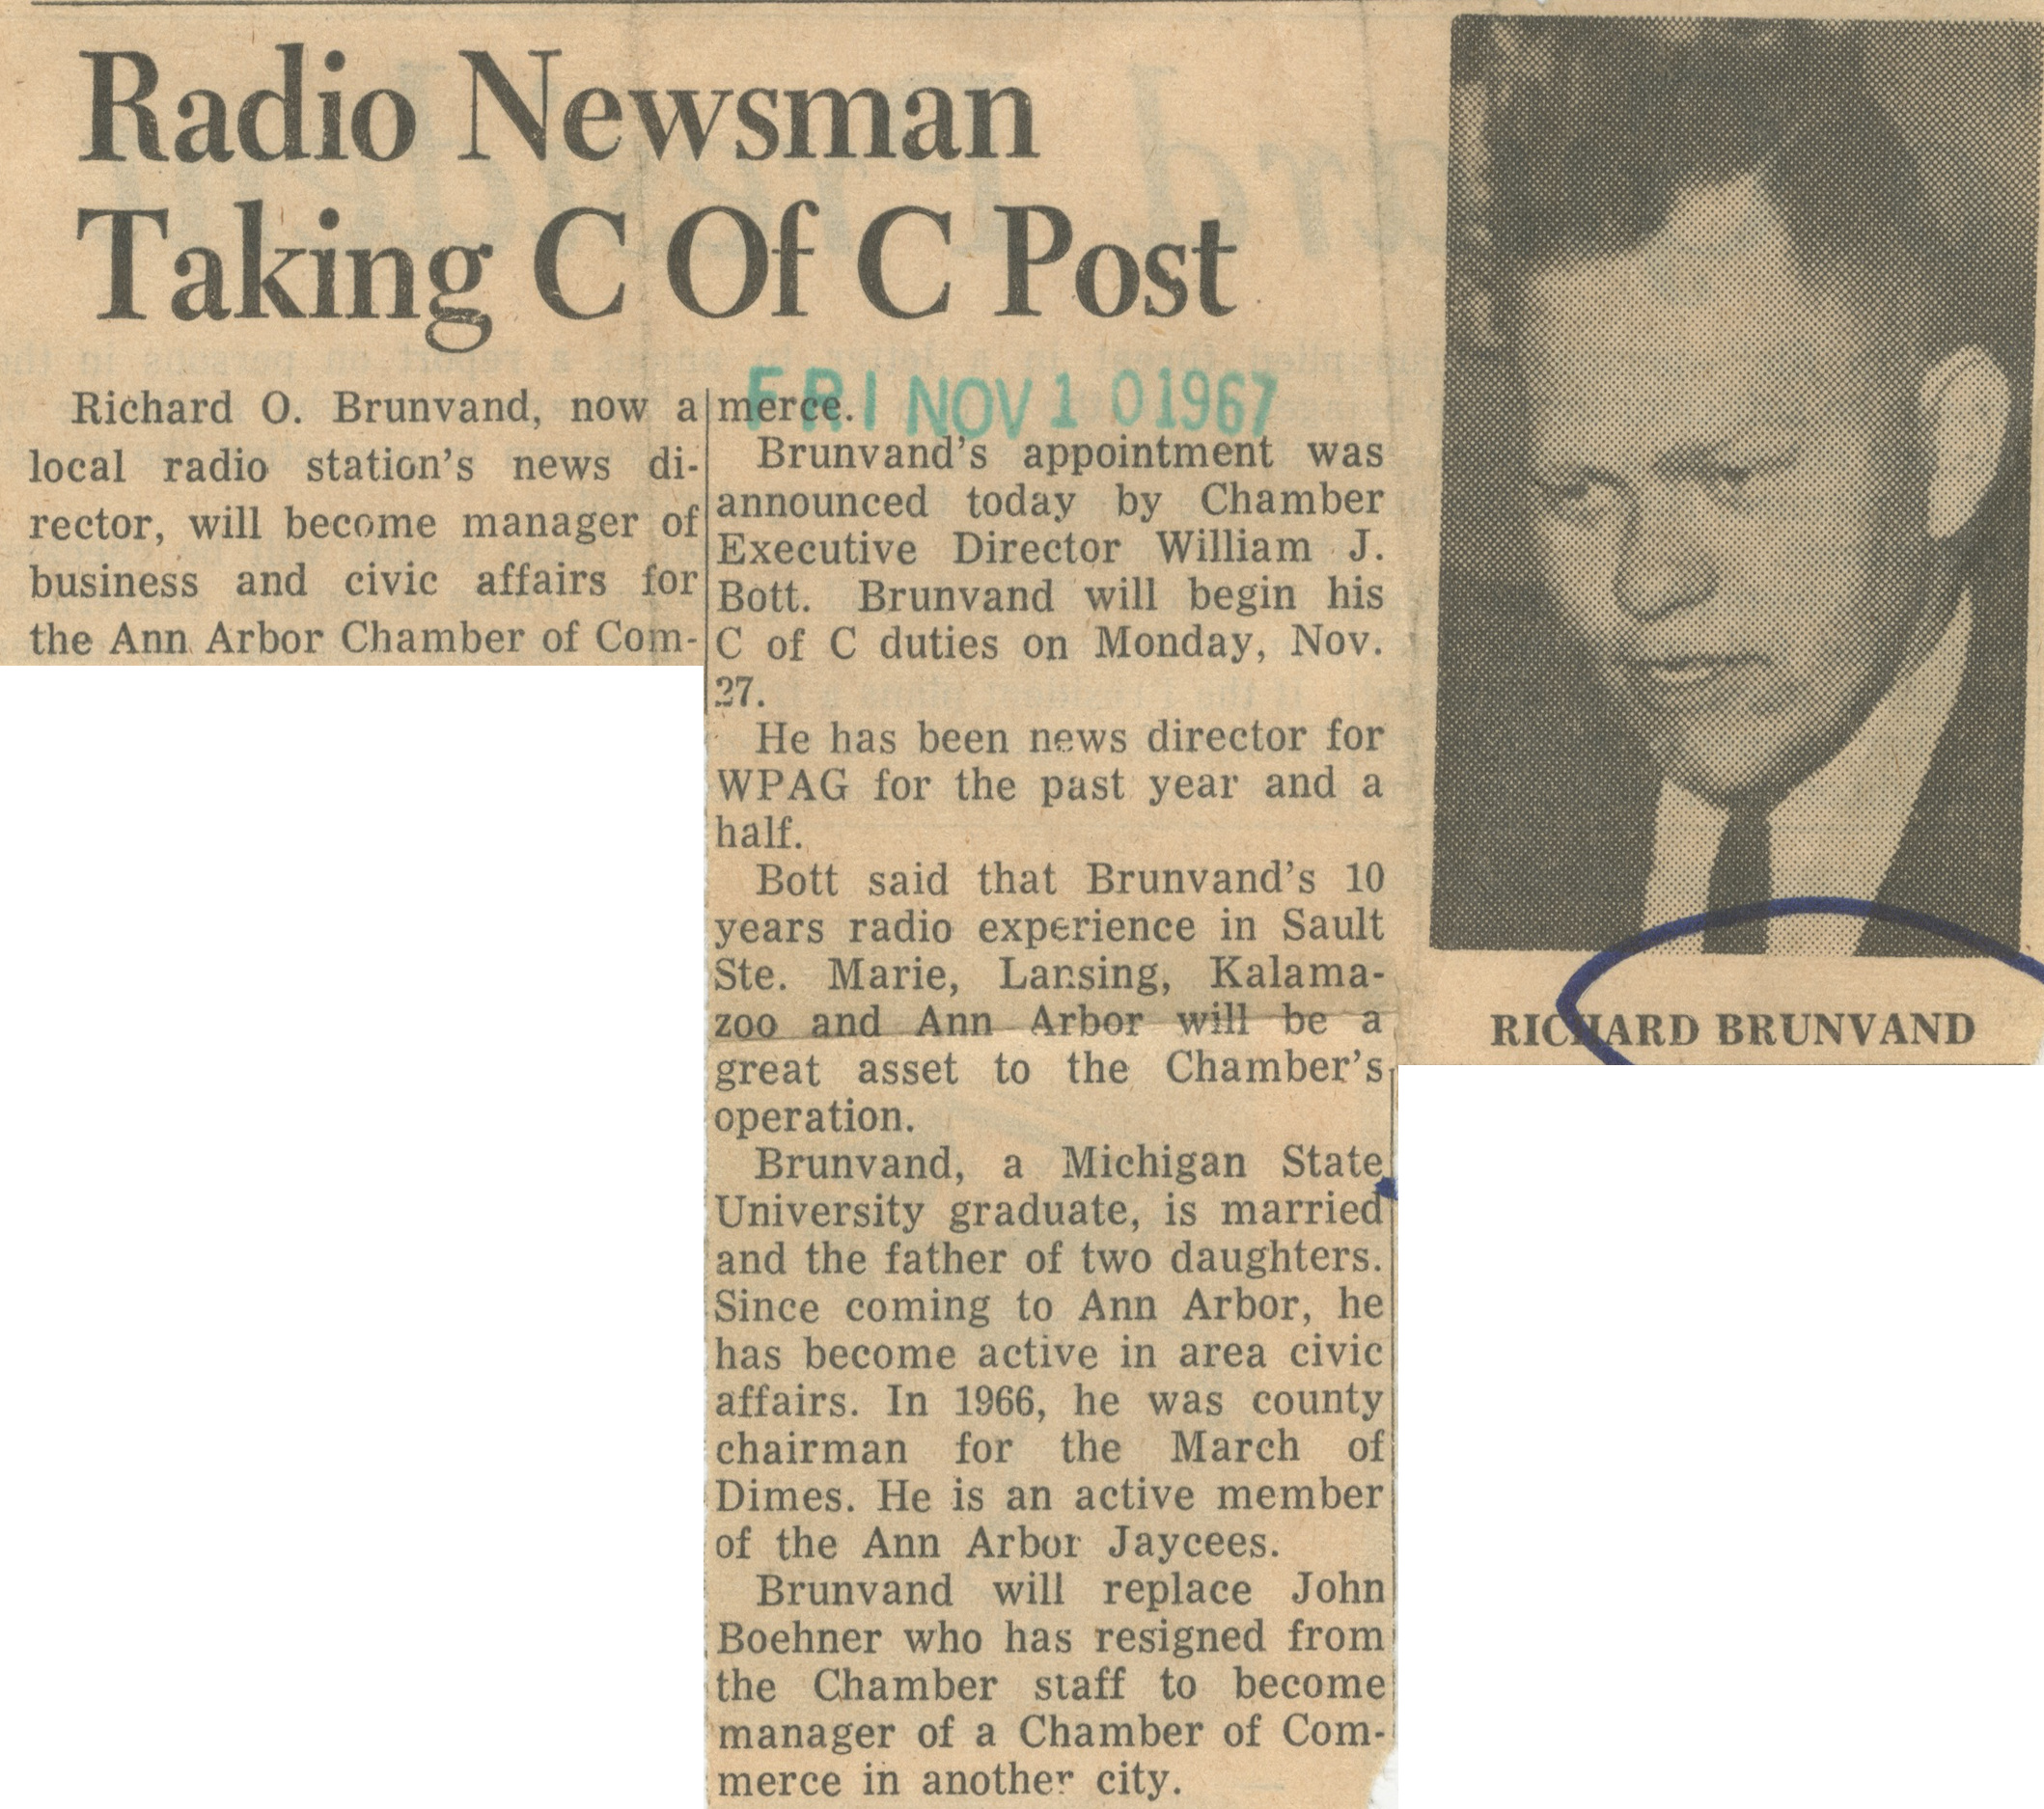 Radio Newsman Taking C Of C Post image